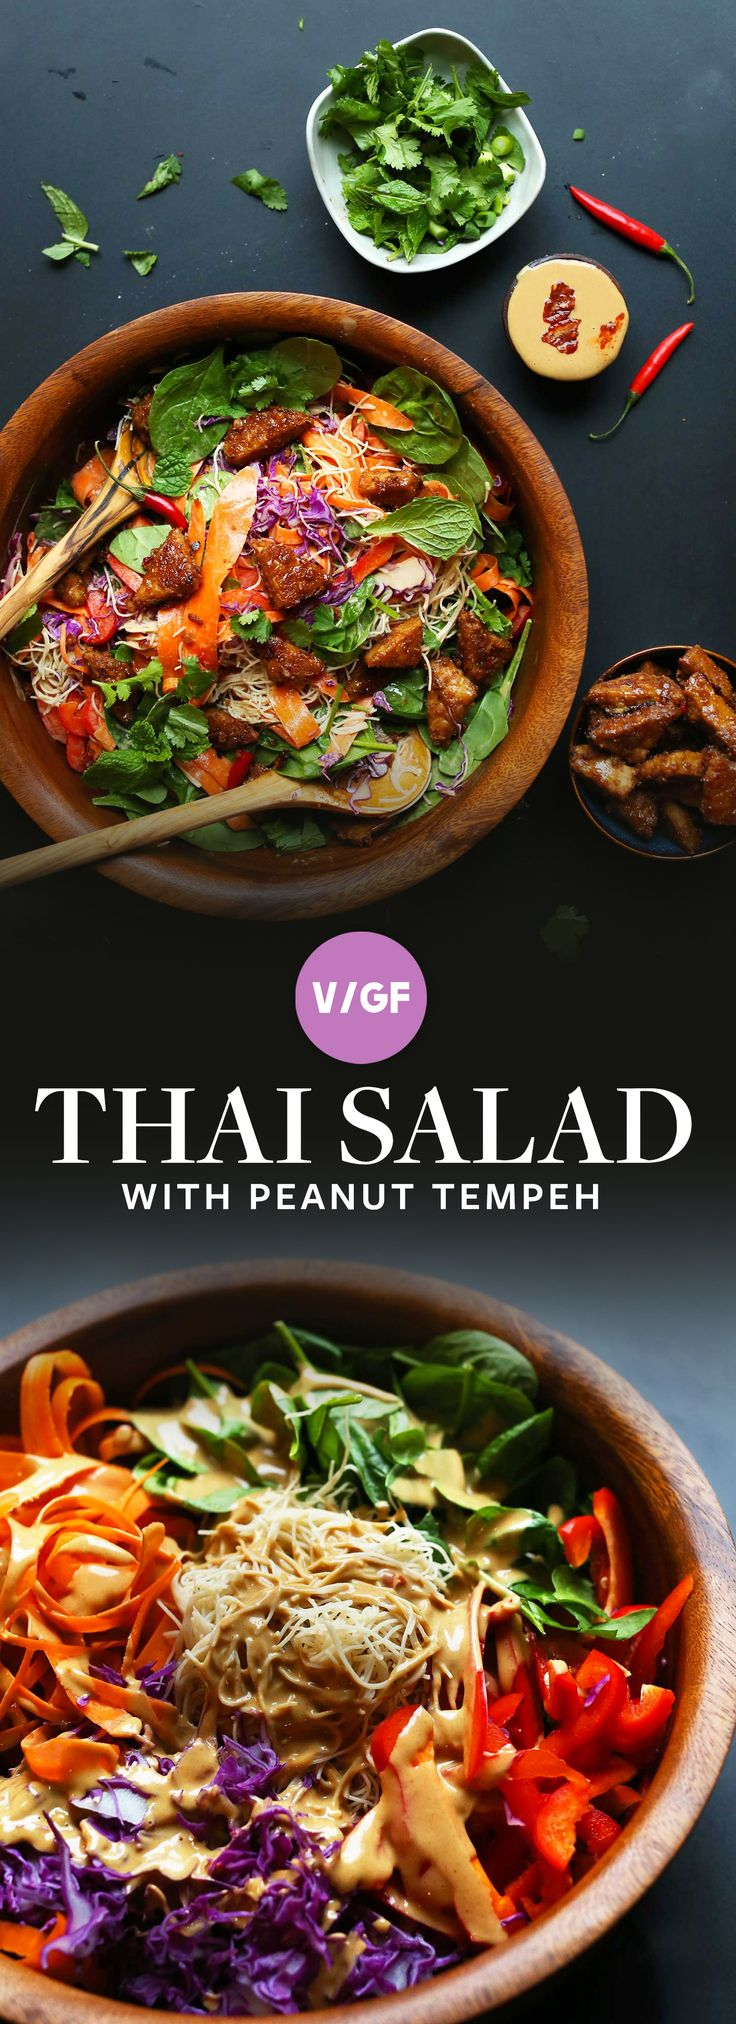 30-minute rainbow Thai salad with veggies, noodles, and marinated peanut tempeh! Dress with peanut sauce for a flavorful, healthy, plant-based meal! (Chicken Sauce)